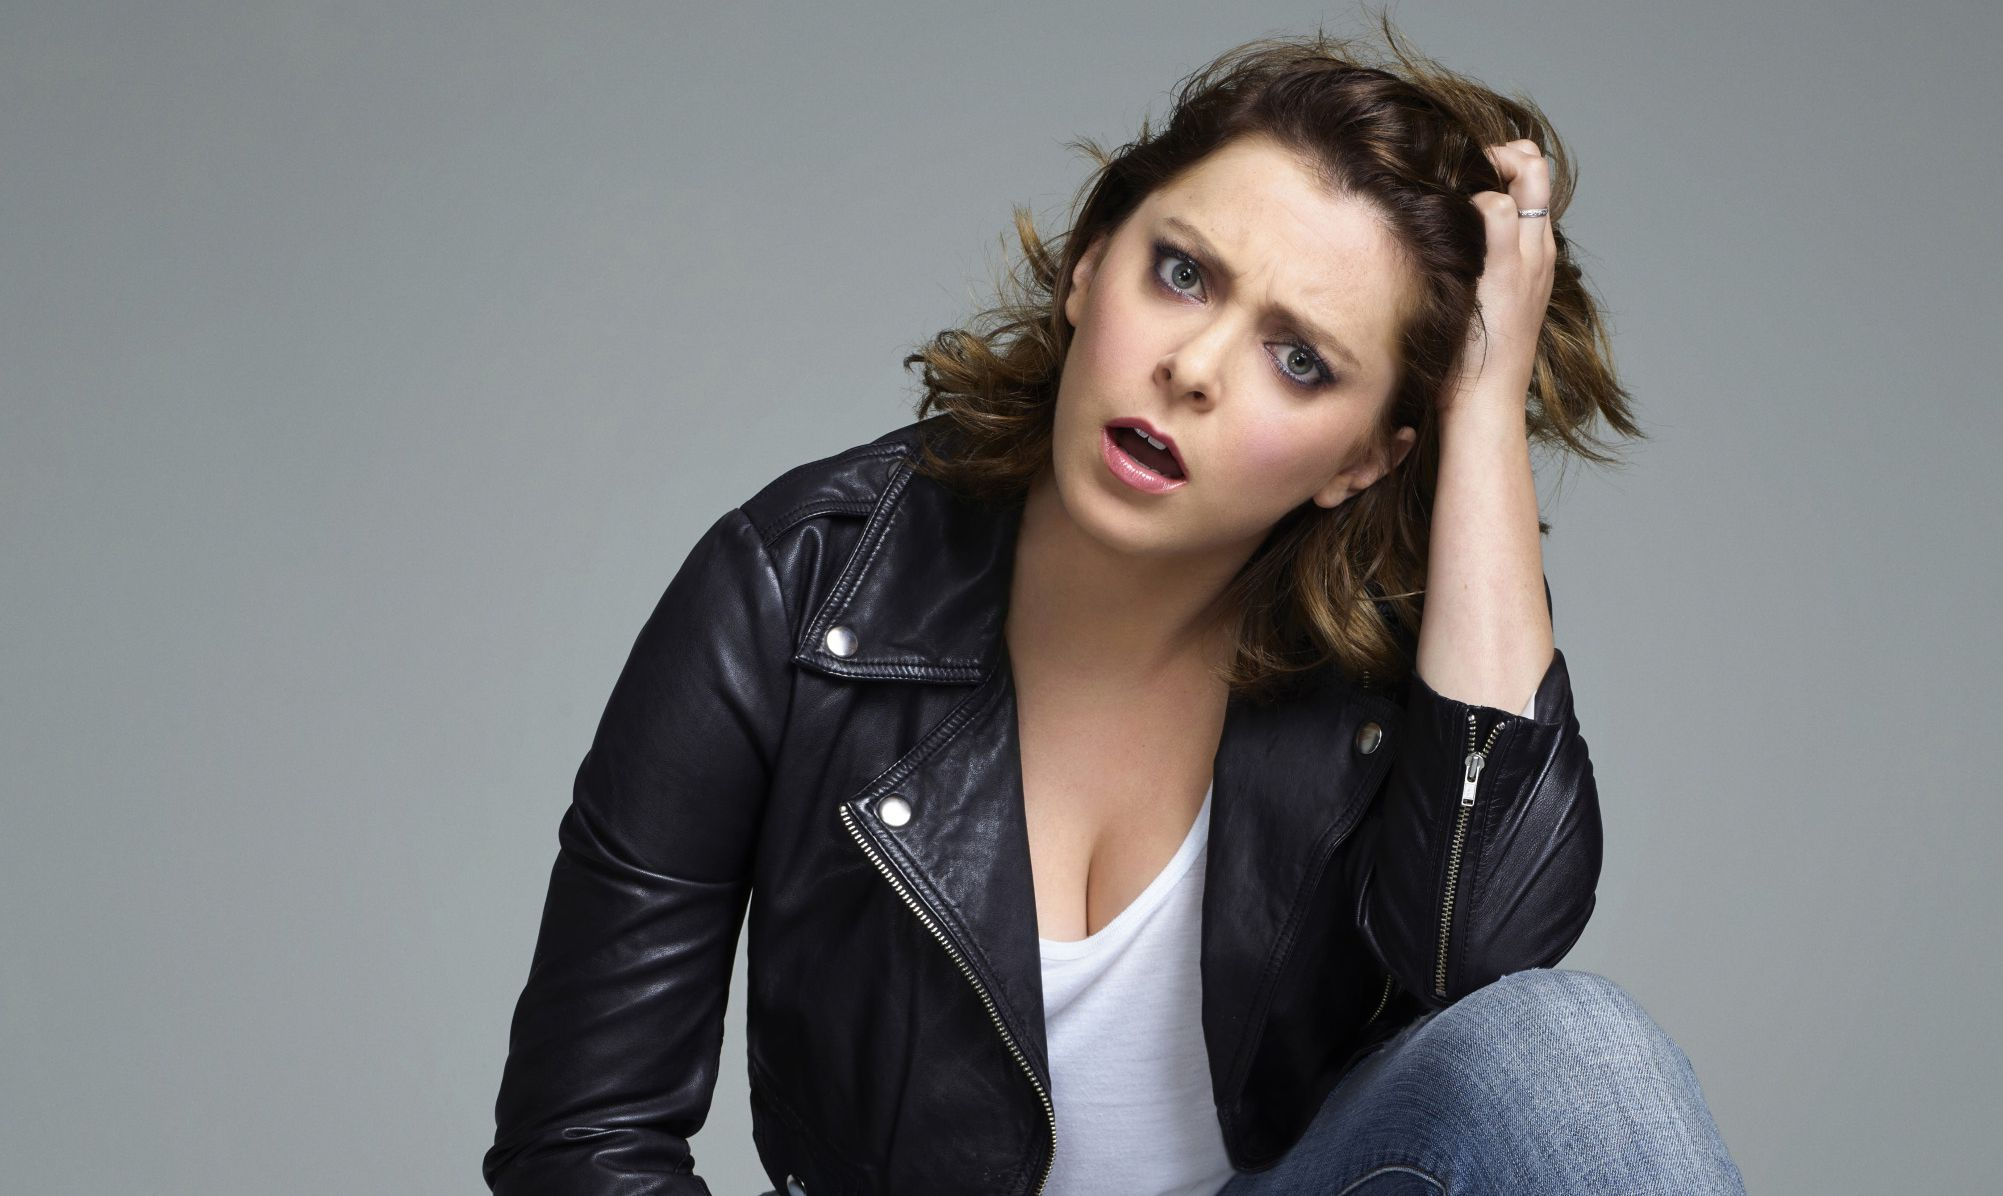 Rachel Bloom has some new ideas she's crazy about - The